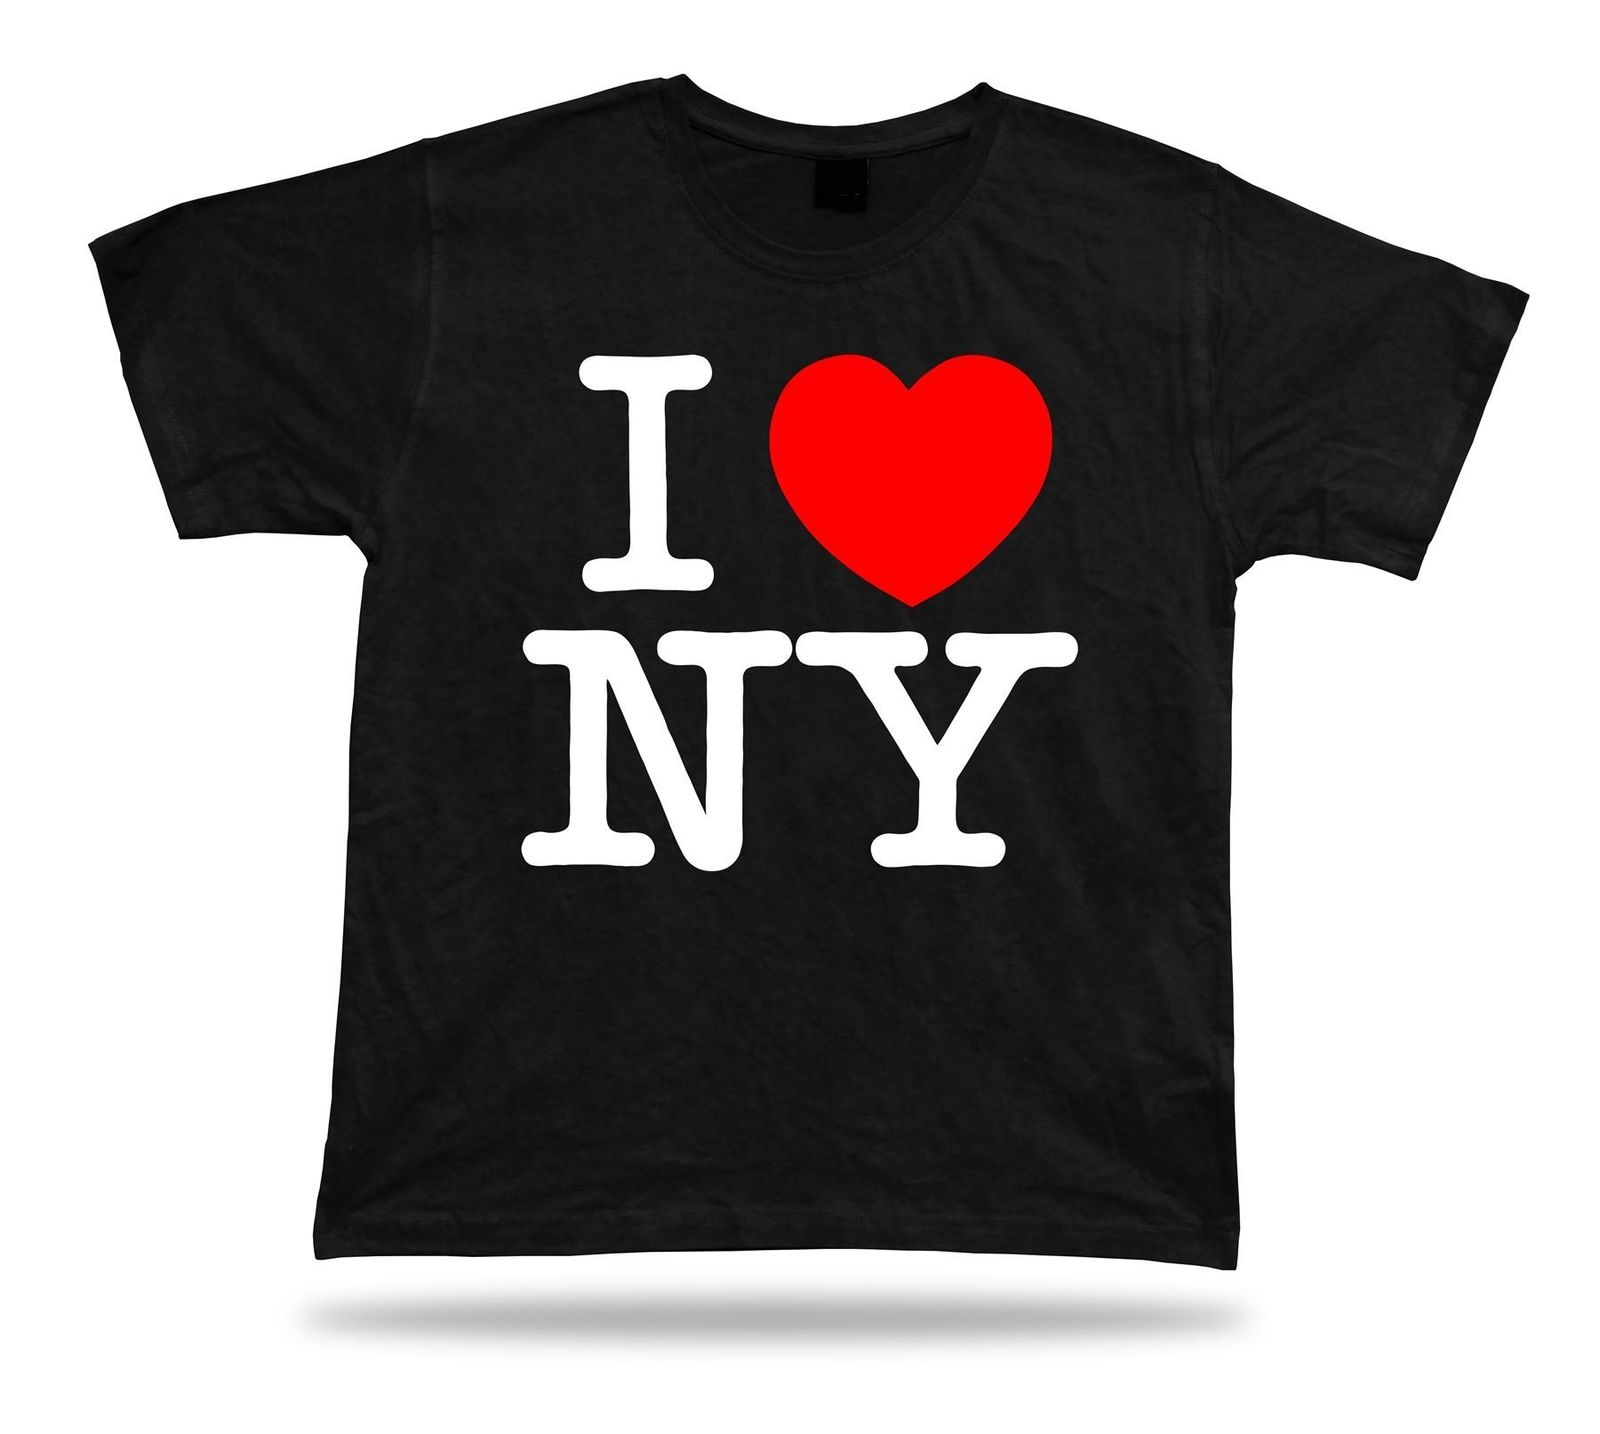 <font><b>I</b></font> <font><b>Love</b></font> New York <font><b>NY</b></font> Heart souvenir Funny T <font><b>shirt</b></font> gift Comics Classic Apparel image